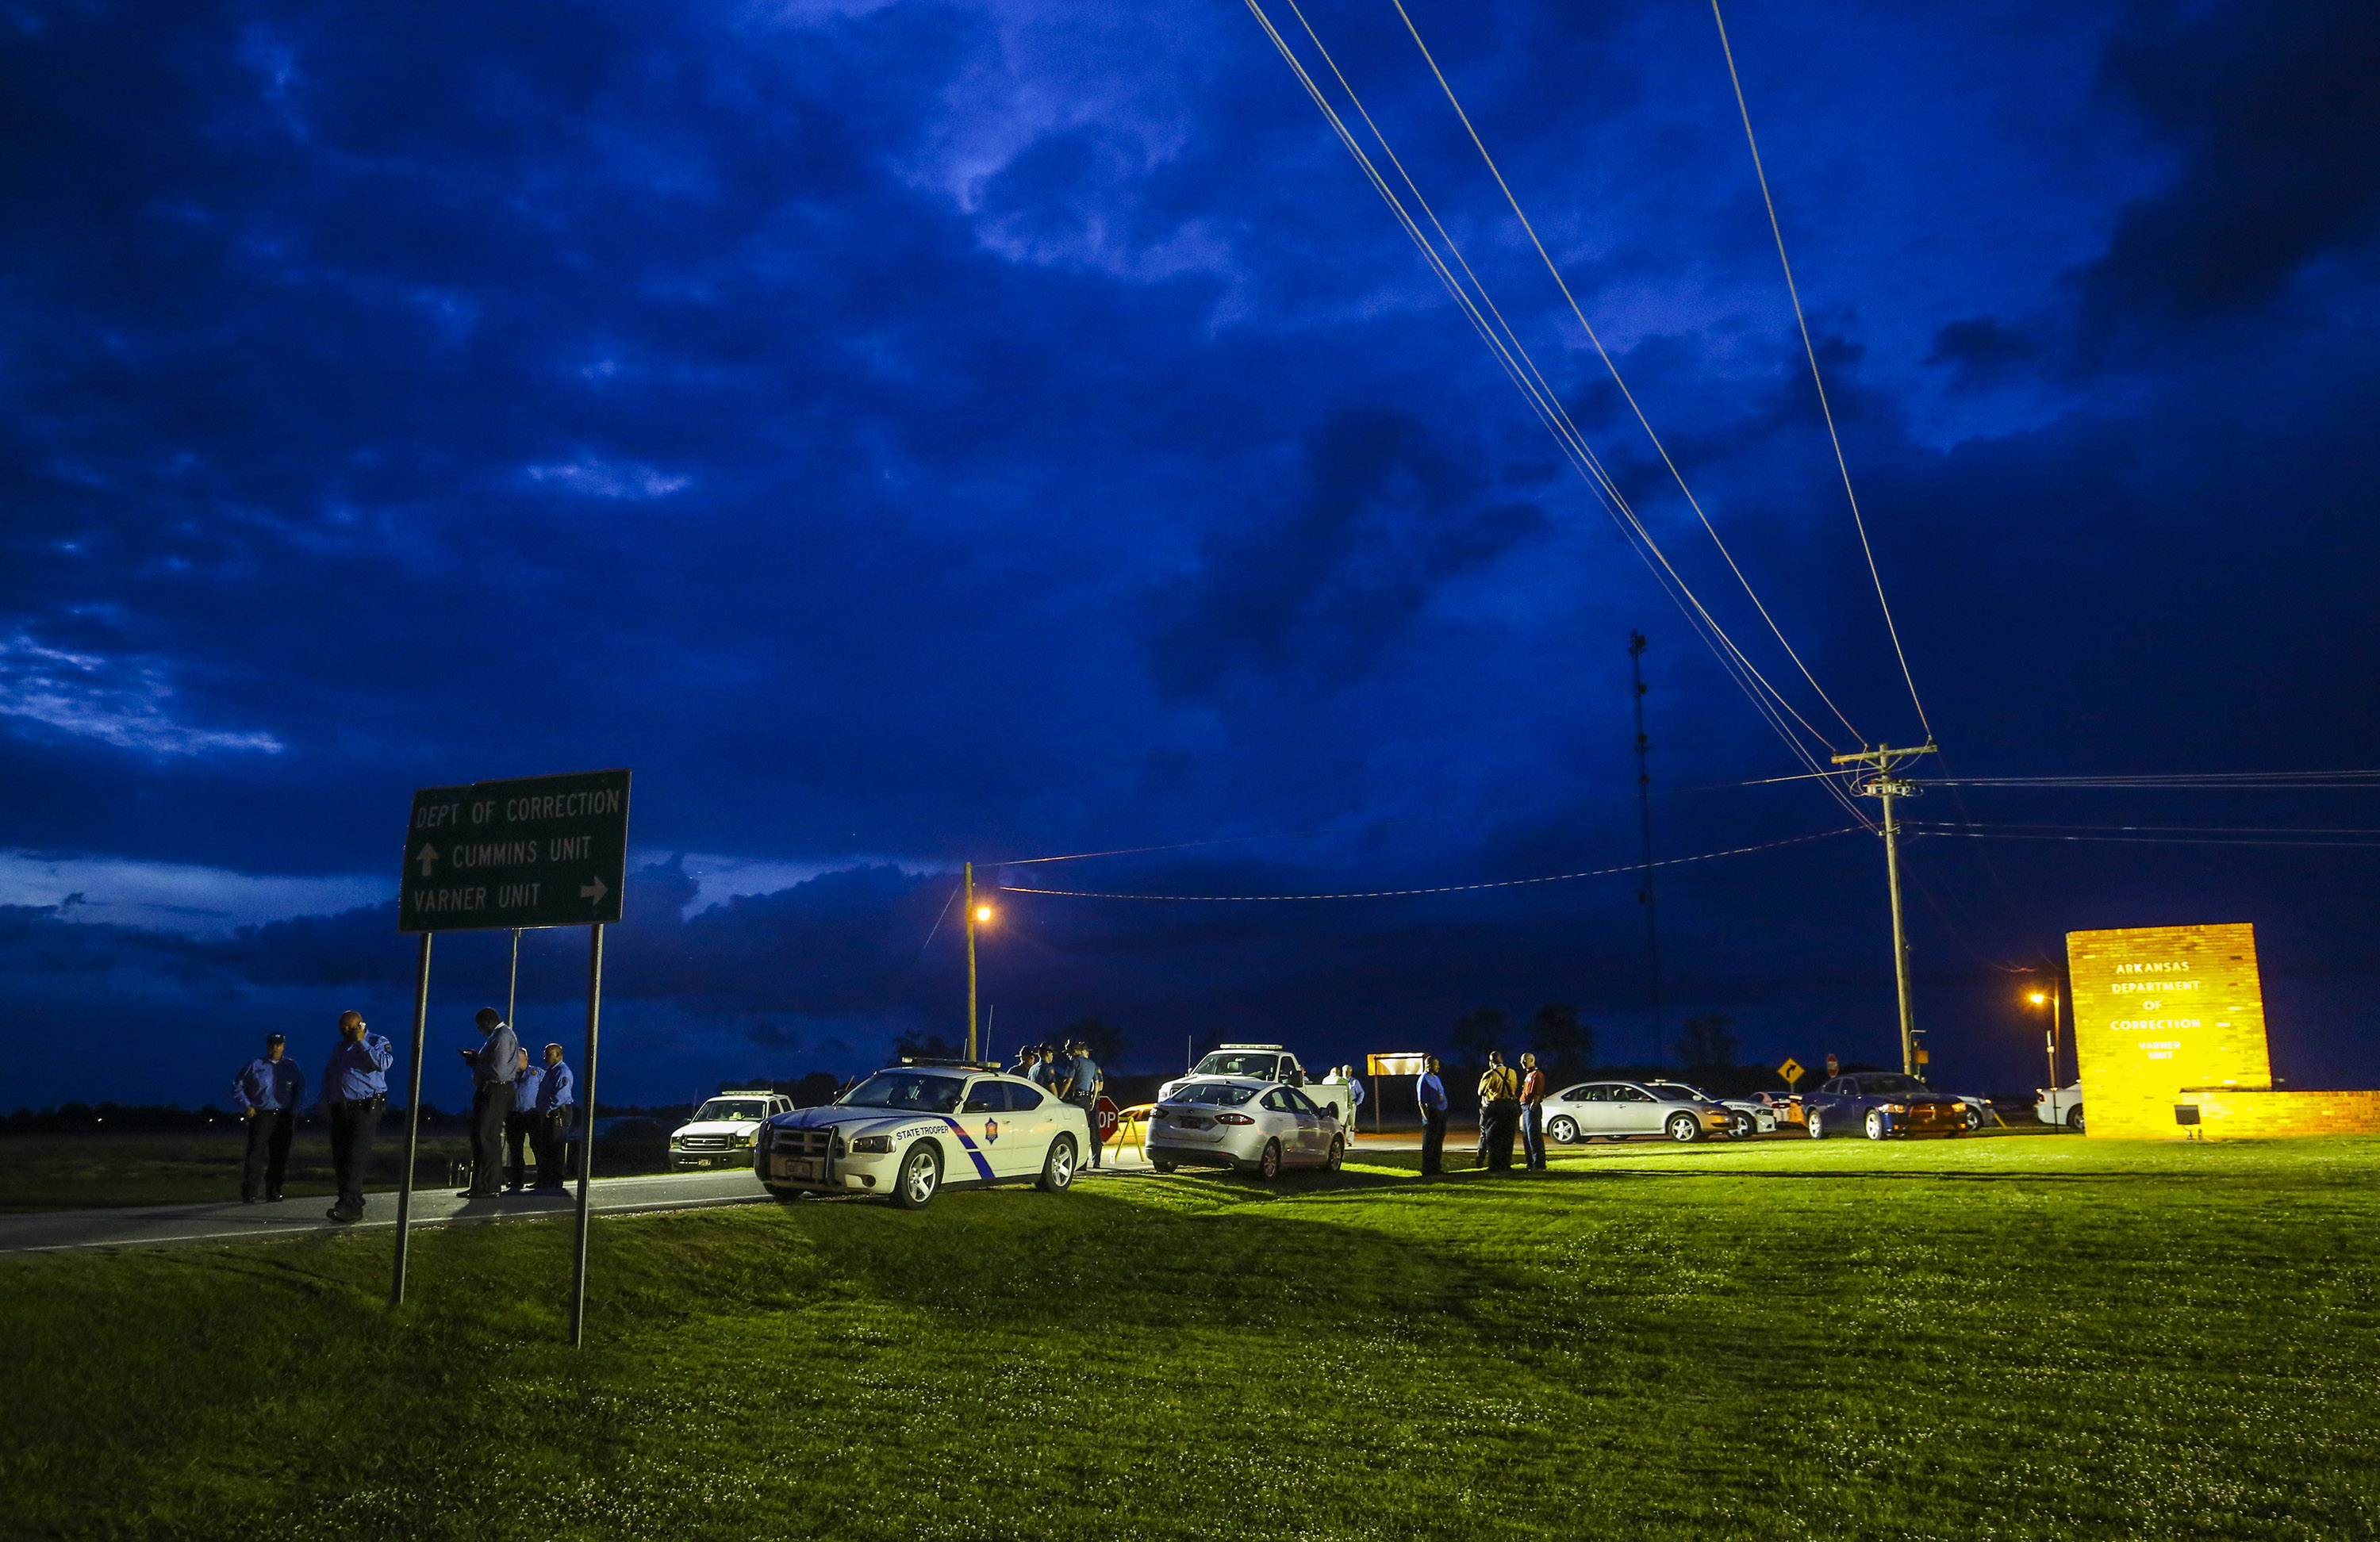 In this Monday evening, April 17, 2017 photo, the sun sets behind clouds over an Arkansas State Police command post outside the Varner Unit of the Arkansas Department of Correction near Varner, Ark. As state officials prepare to carry out a double execution Thursday ahead of a drug expiration deadline and despite the setback the U.S. Supreme Court delivered late Monday, lawyers for those condemned men look to be taking a different approach: claiming the prisoners are actually innocent. (Stephen B. Thornton/The Arkansas Democrat-Gazette via AP)